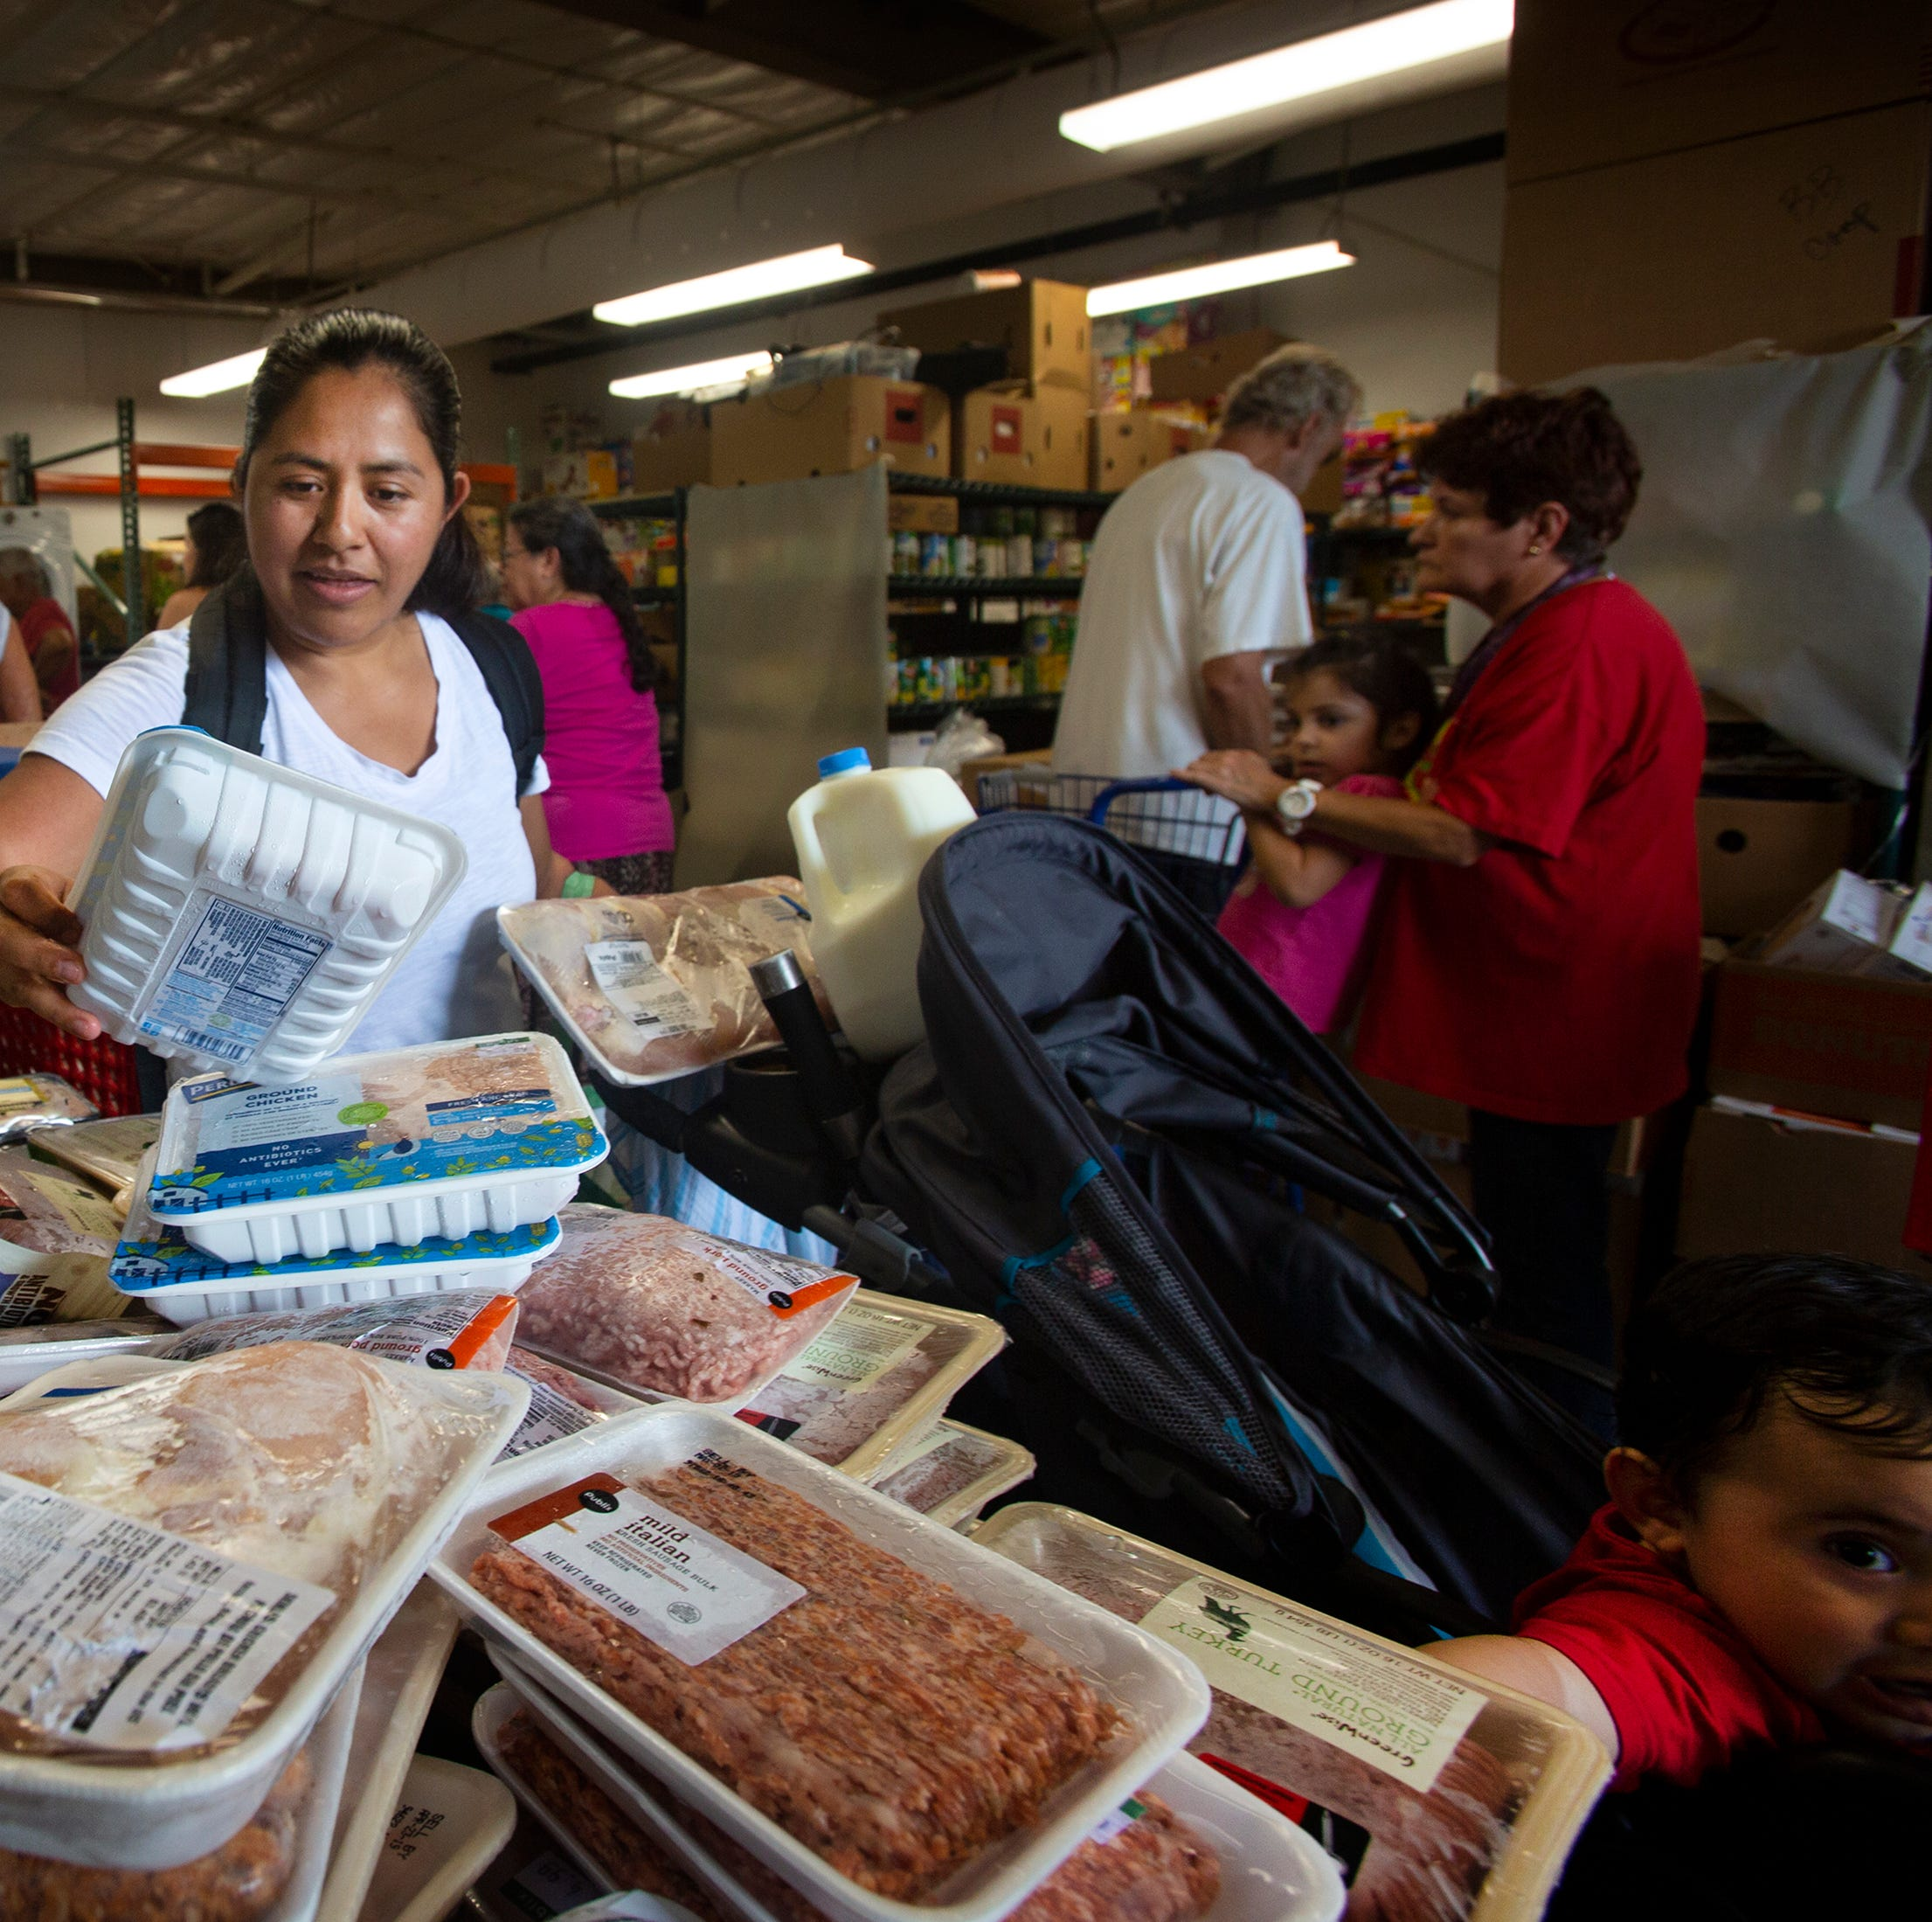 Feeding America maps out food insecurity across U.S.